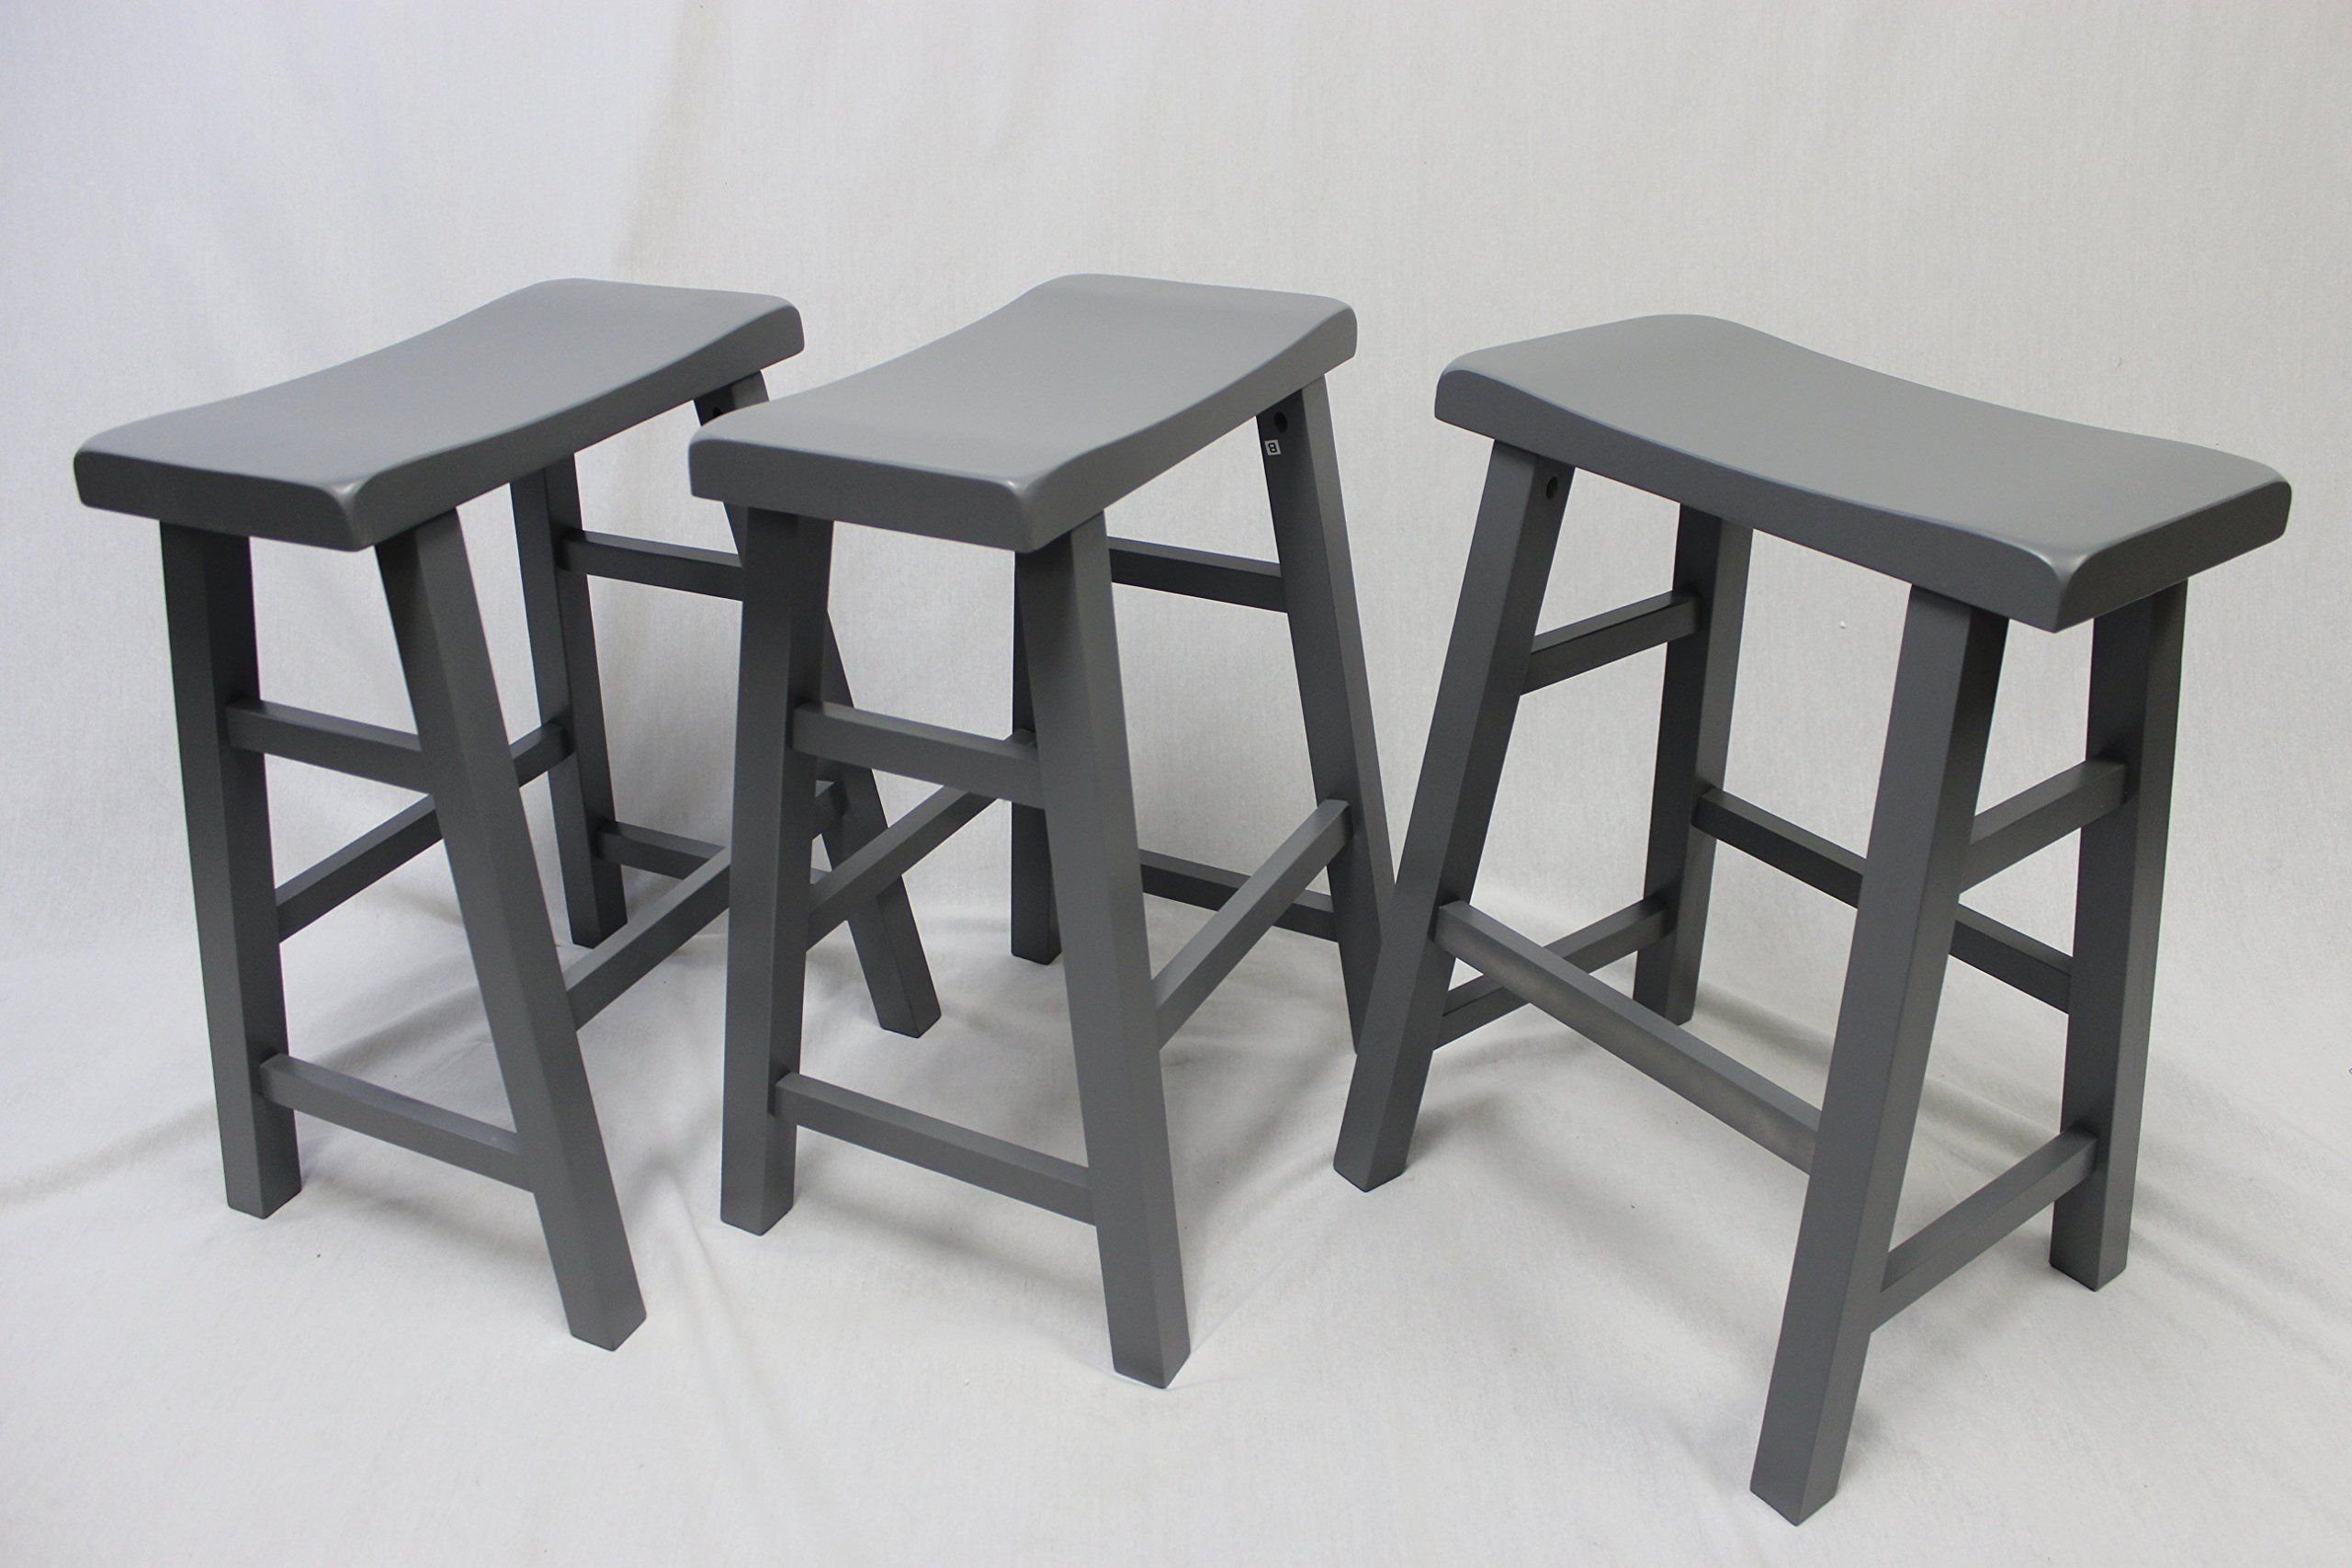 bar counter charcoal and faux wood gray height grey of tall chairs stools how are upholstered wicker stool leather seagrass size padded tufted full